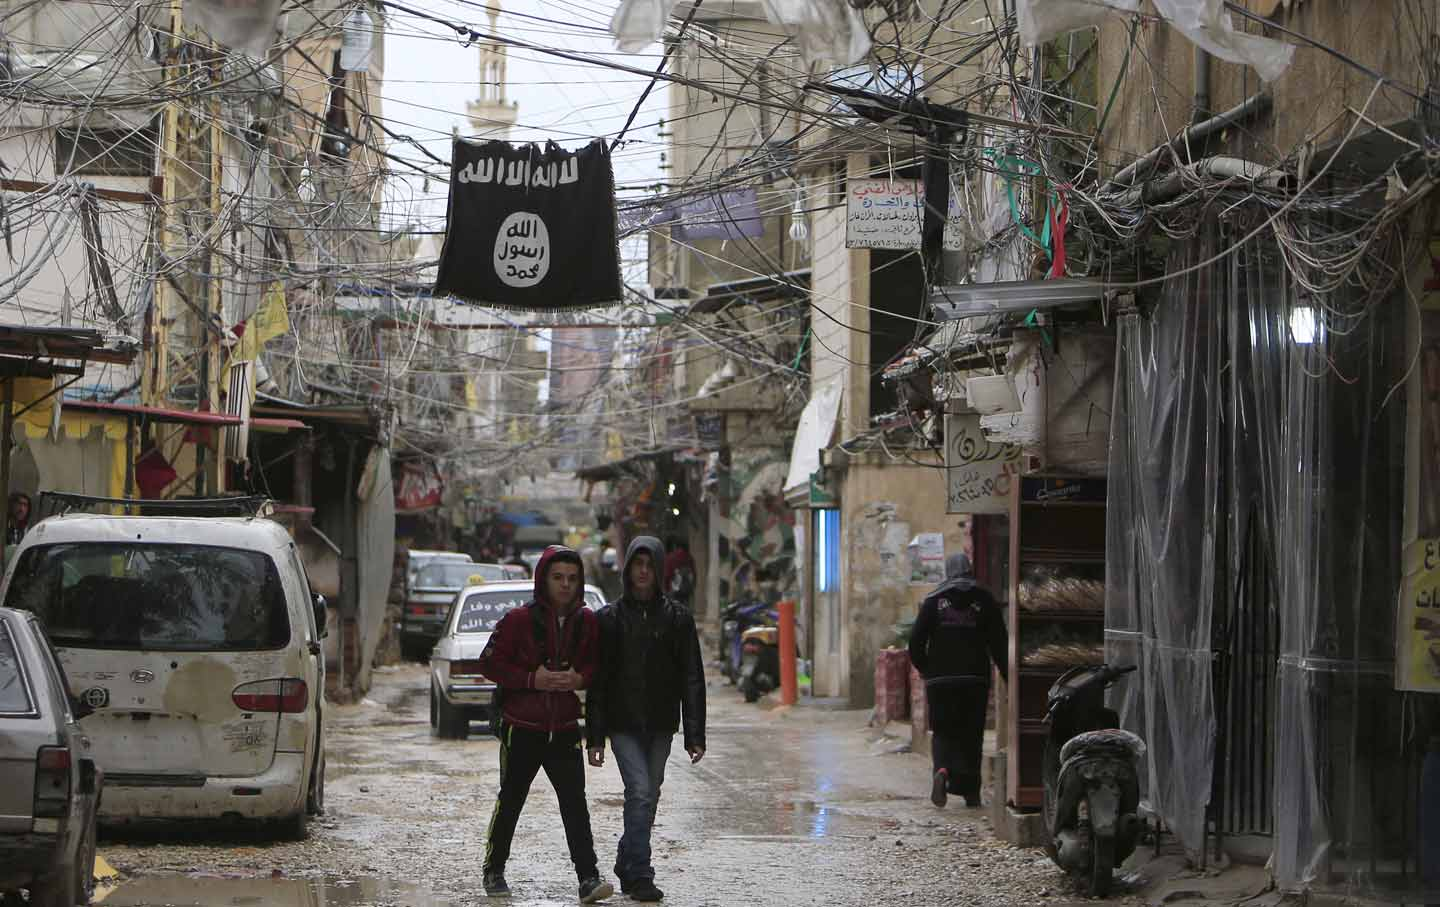 An ISIS flag in Lebanon